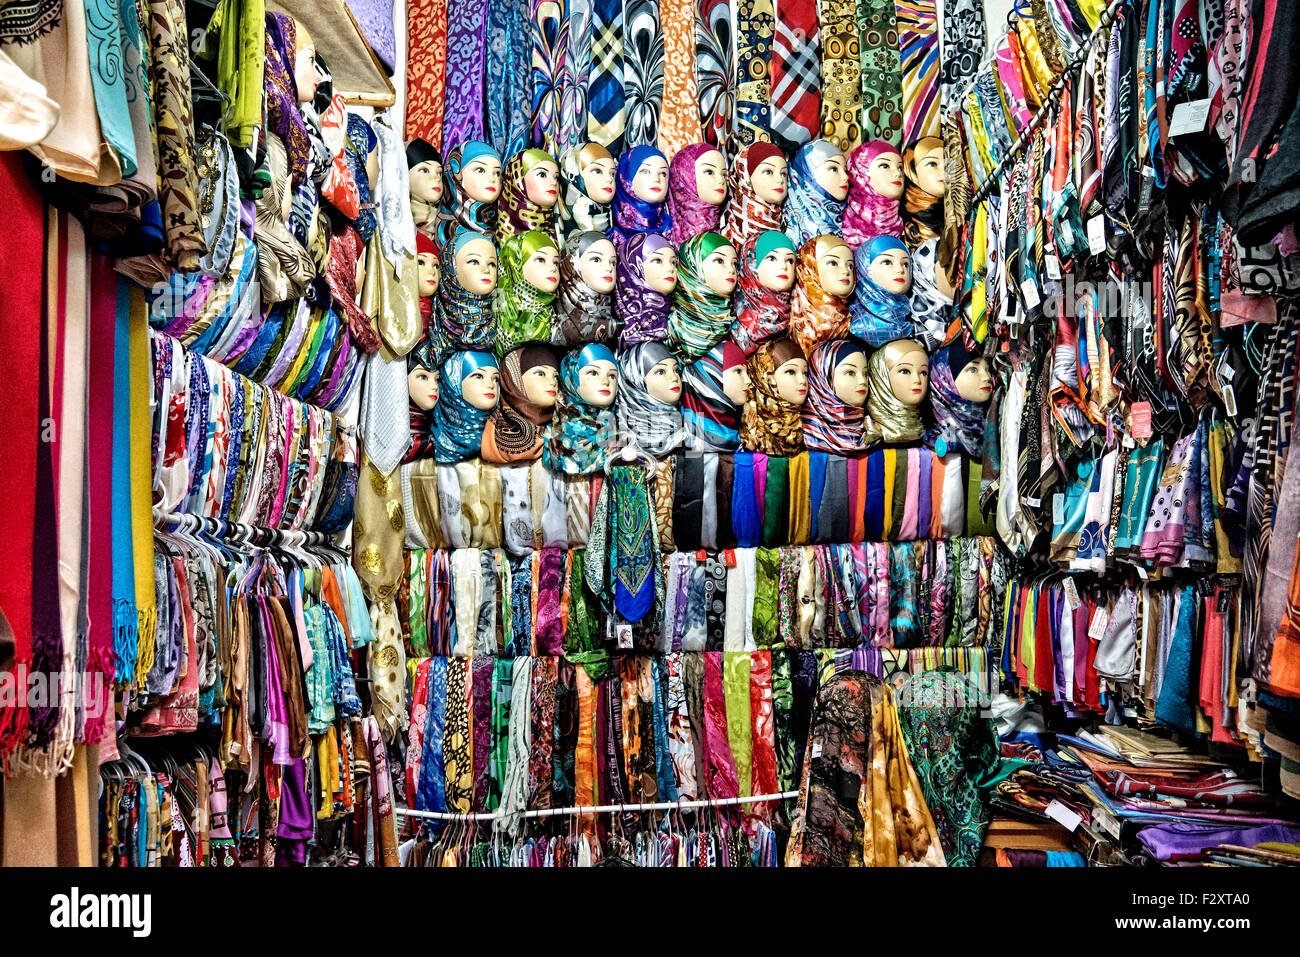 Scarf and hijab shop in Fez old medina, Morocco Stock Photo ...